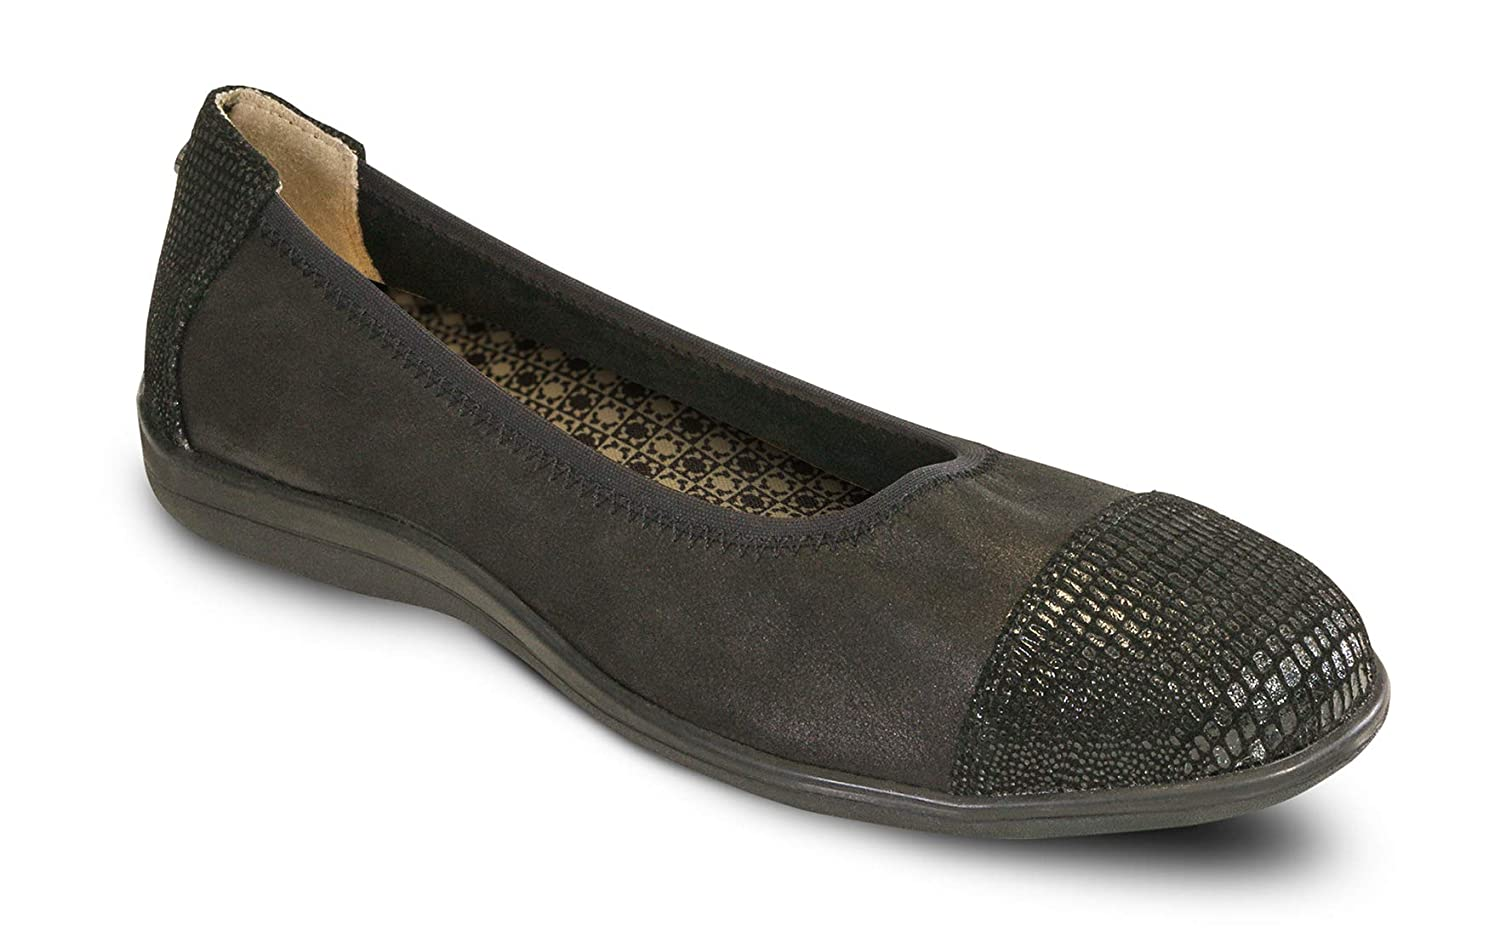 Revere Rhodes Womens Casual Shoe Leather Slip-on